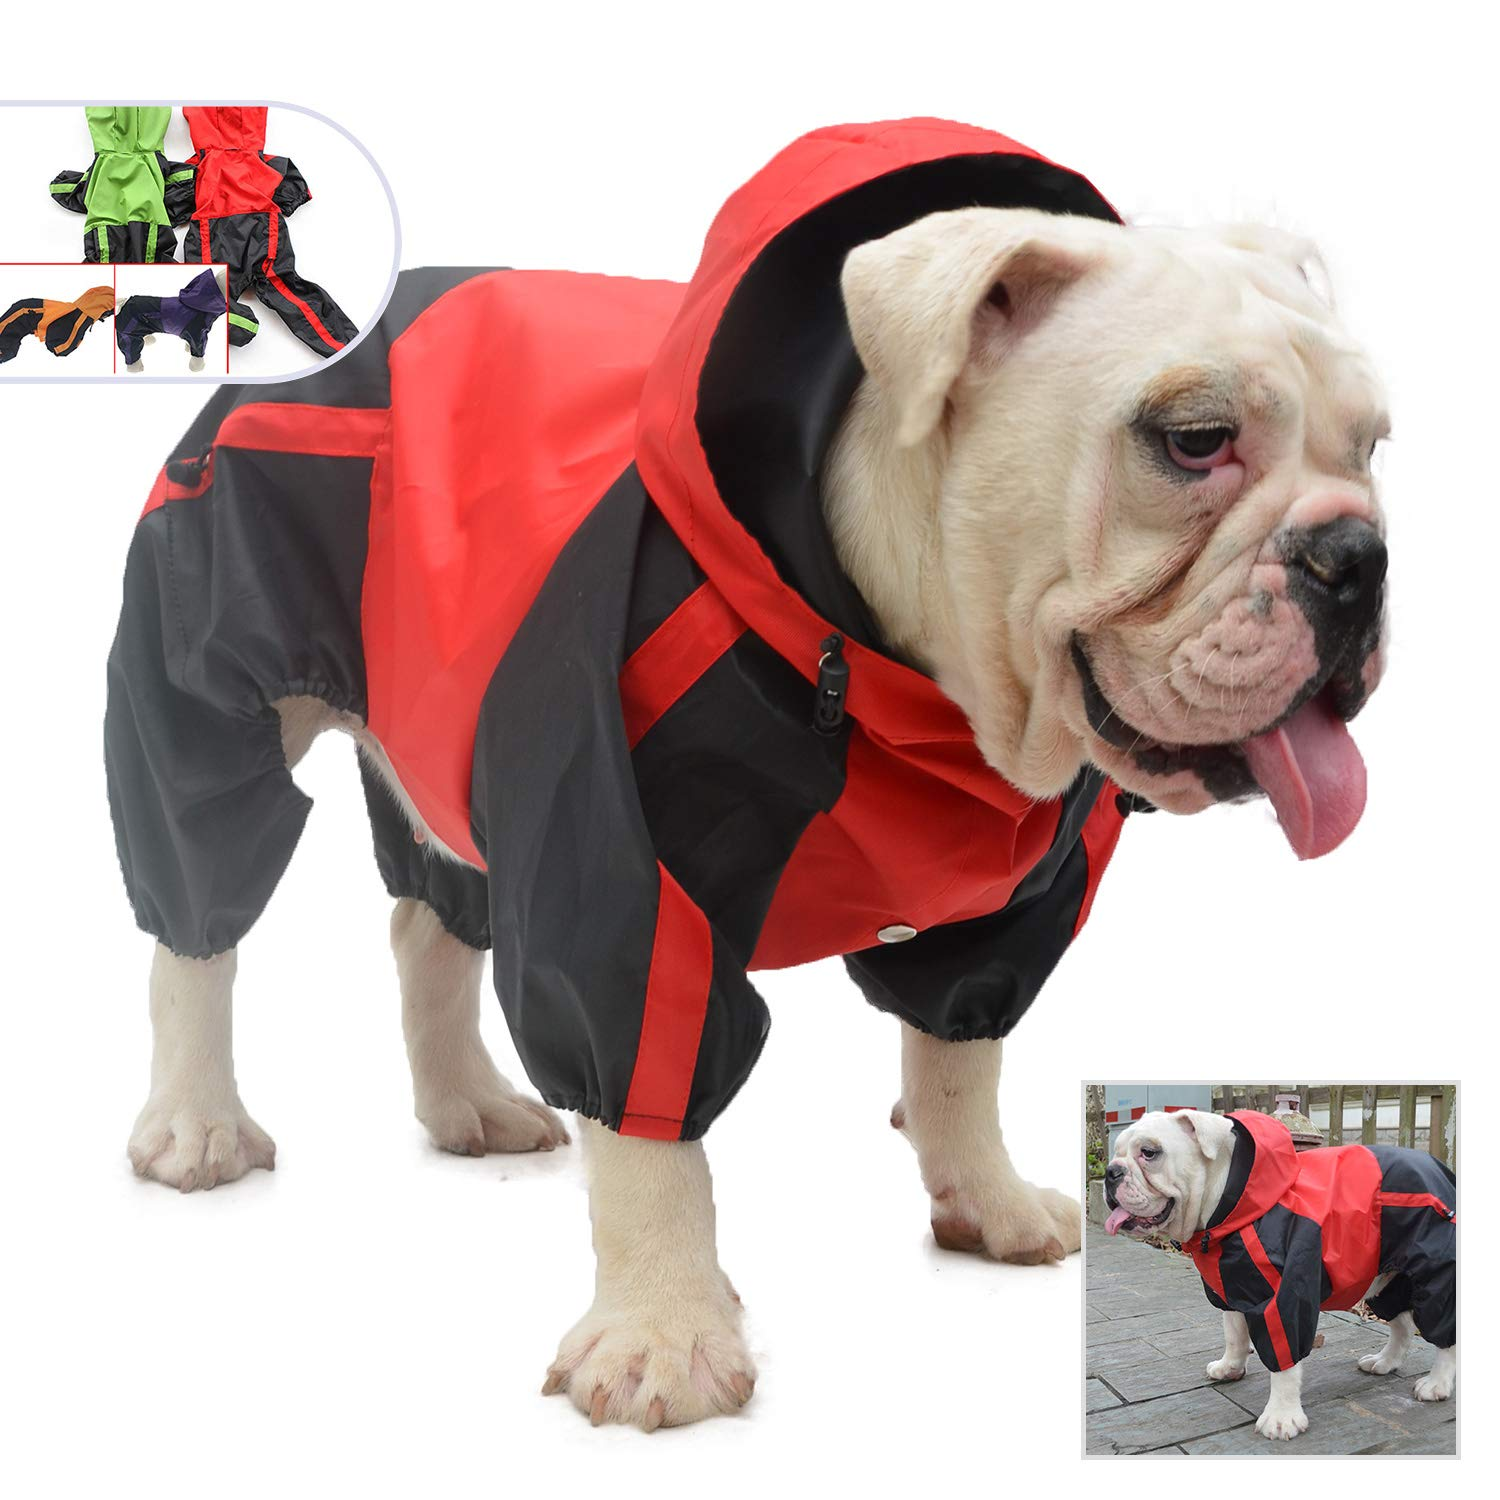 Pet Apparel Dog Clothing Clothes Rain Snow Coats Waterproof Raincoats 4 Four Legs Raincoat for Small Medium Large Big Size Dogs Adorable Hoodie Costumes for Golden Retriever Labrador Chihuahua Poodle